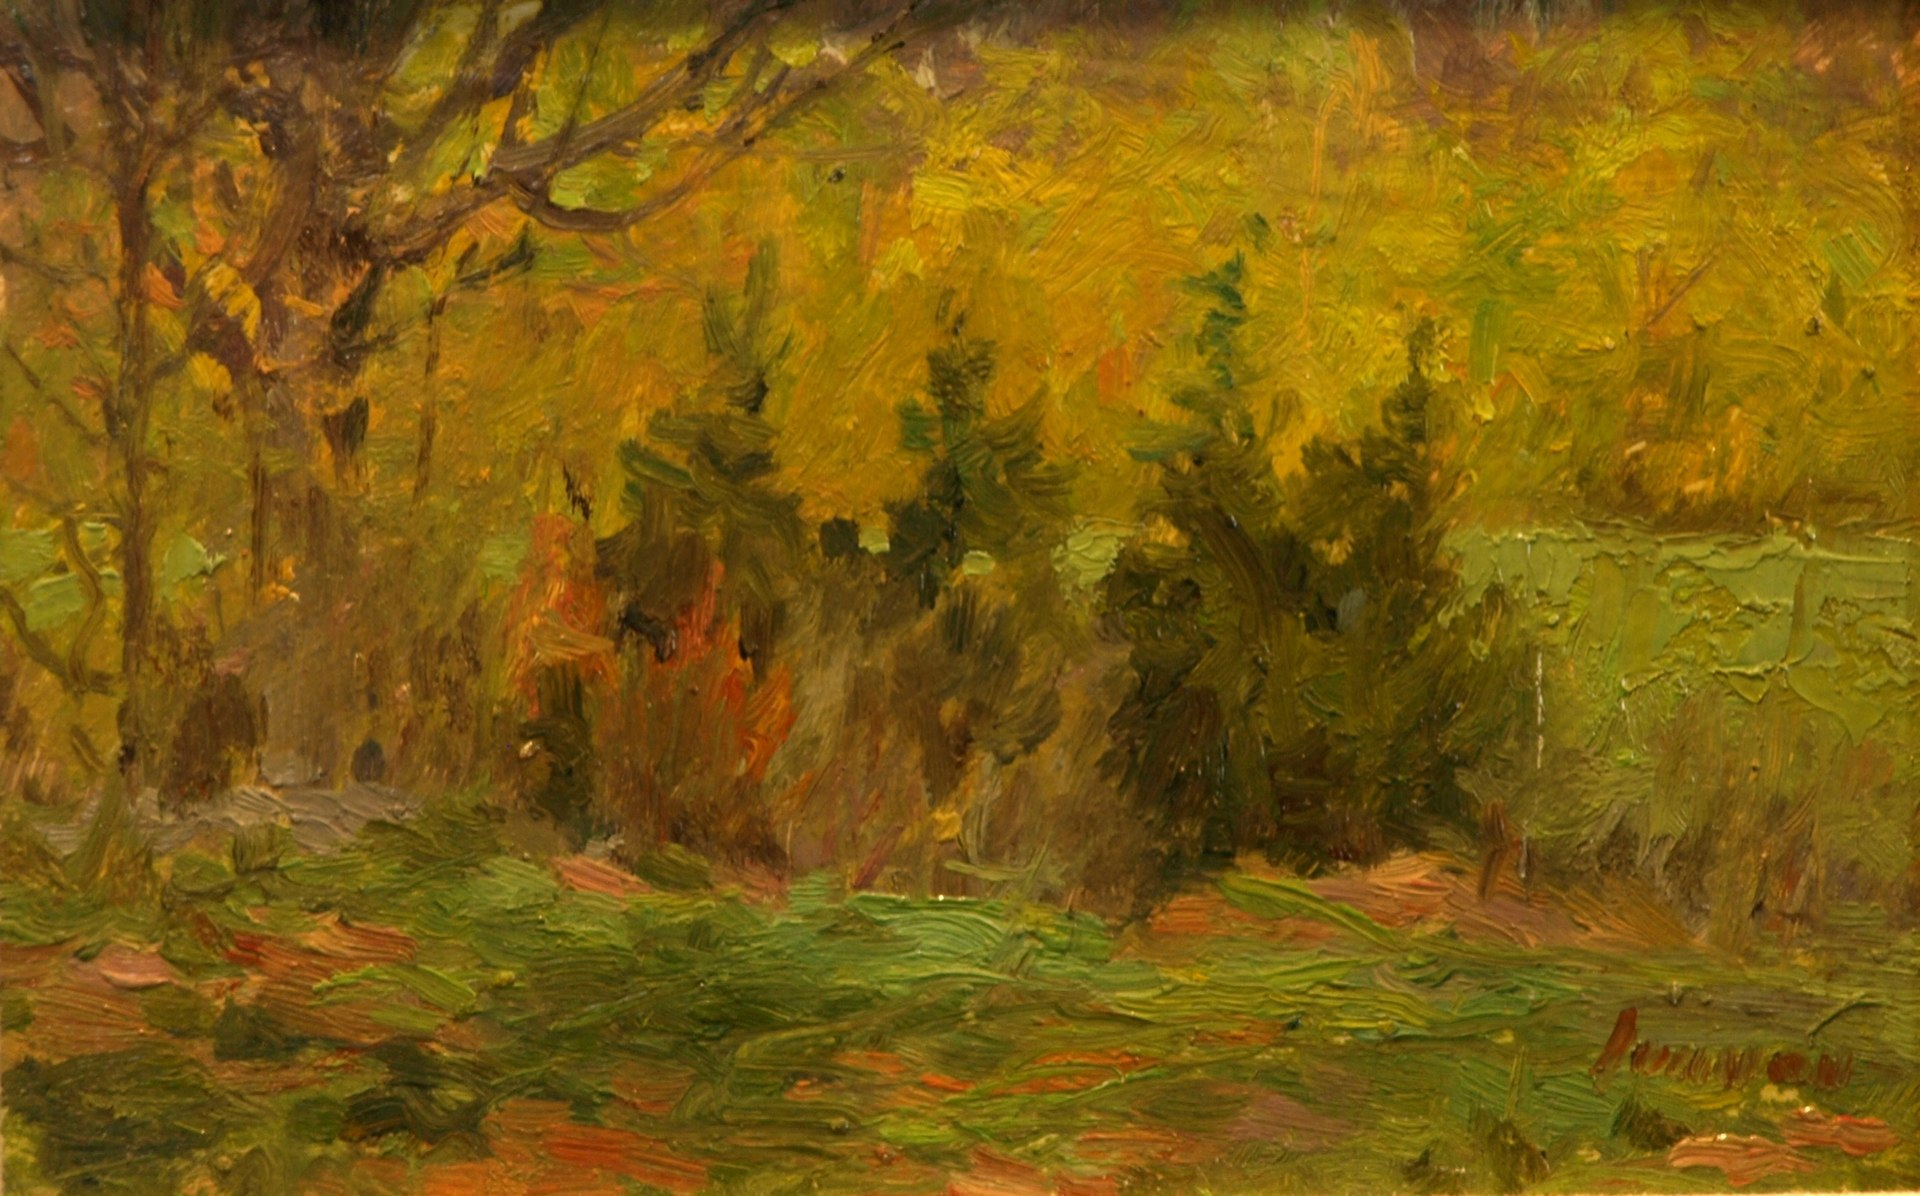 Four Cedars - Springtime, Oil on Panel, 6 x 10 Inches, by Bernard Lennon, $225